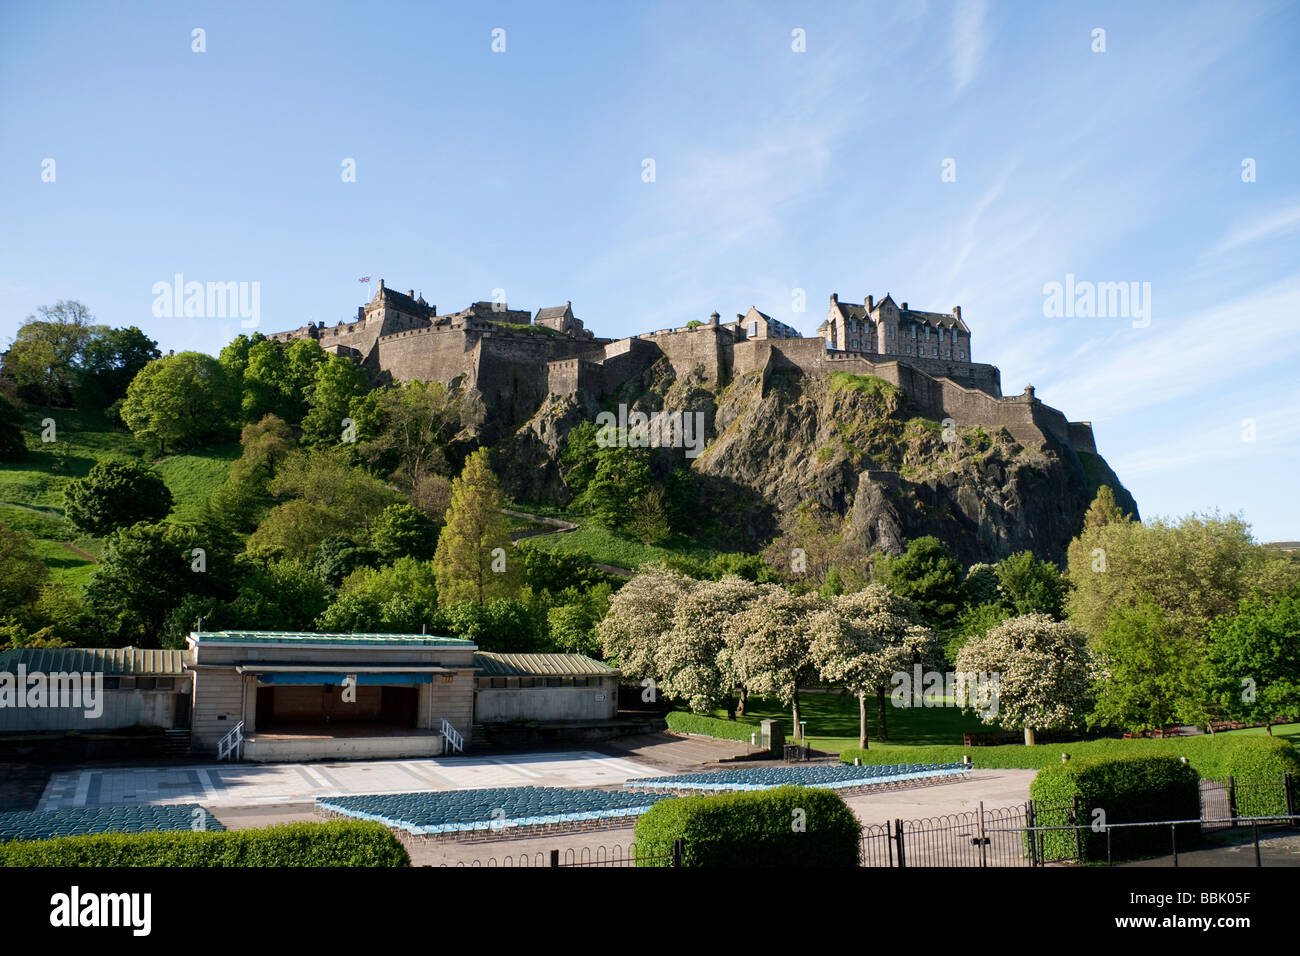 Edinburgh Castle and the Ross Bandstand in Princes Street Gardens on a summer's day - Stock Image